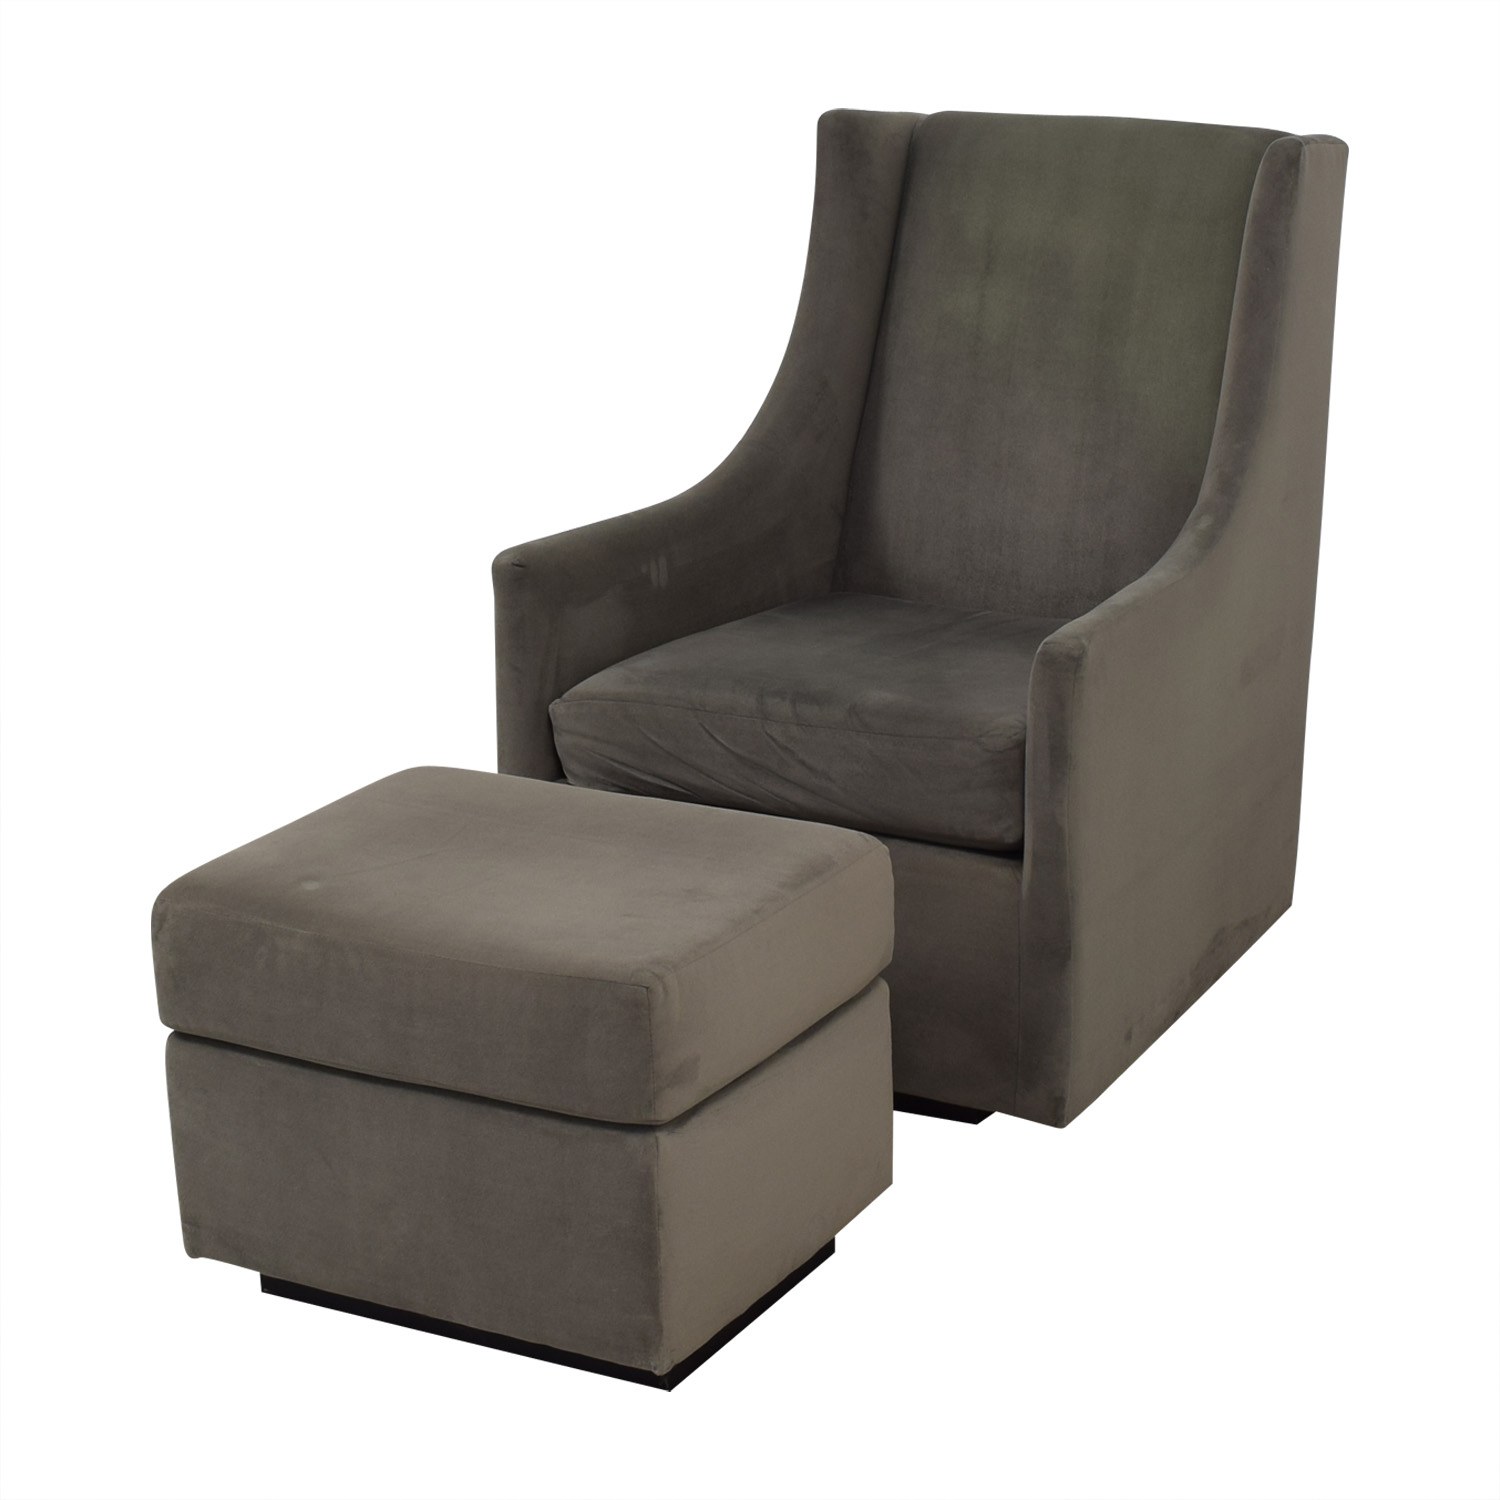 buy West Elm West Elm Graham Glider with Ottoman online